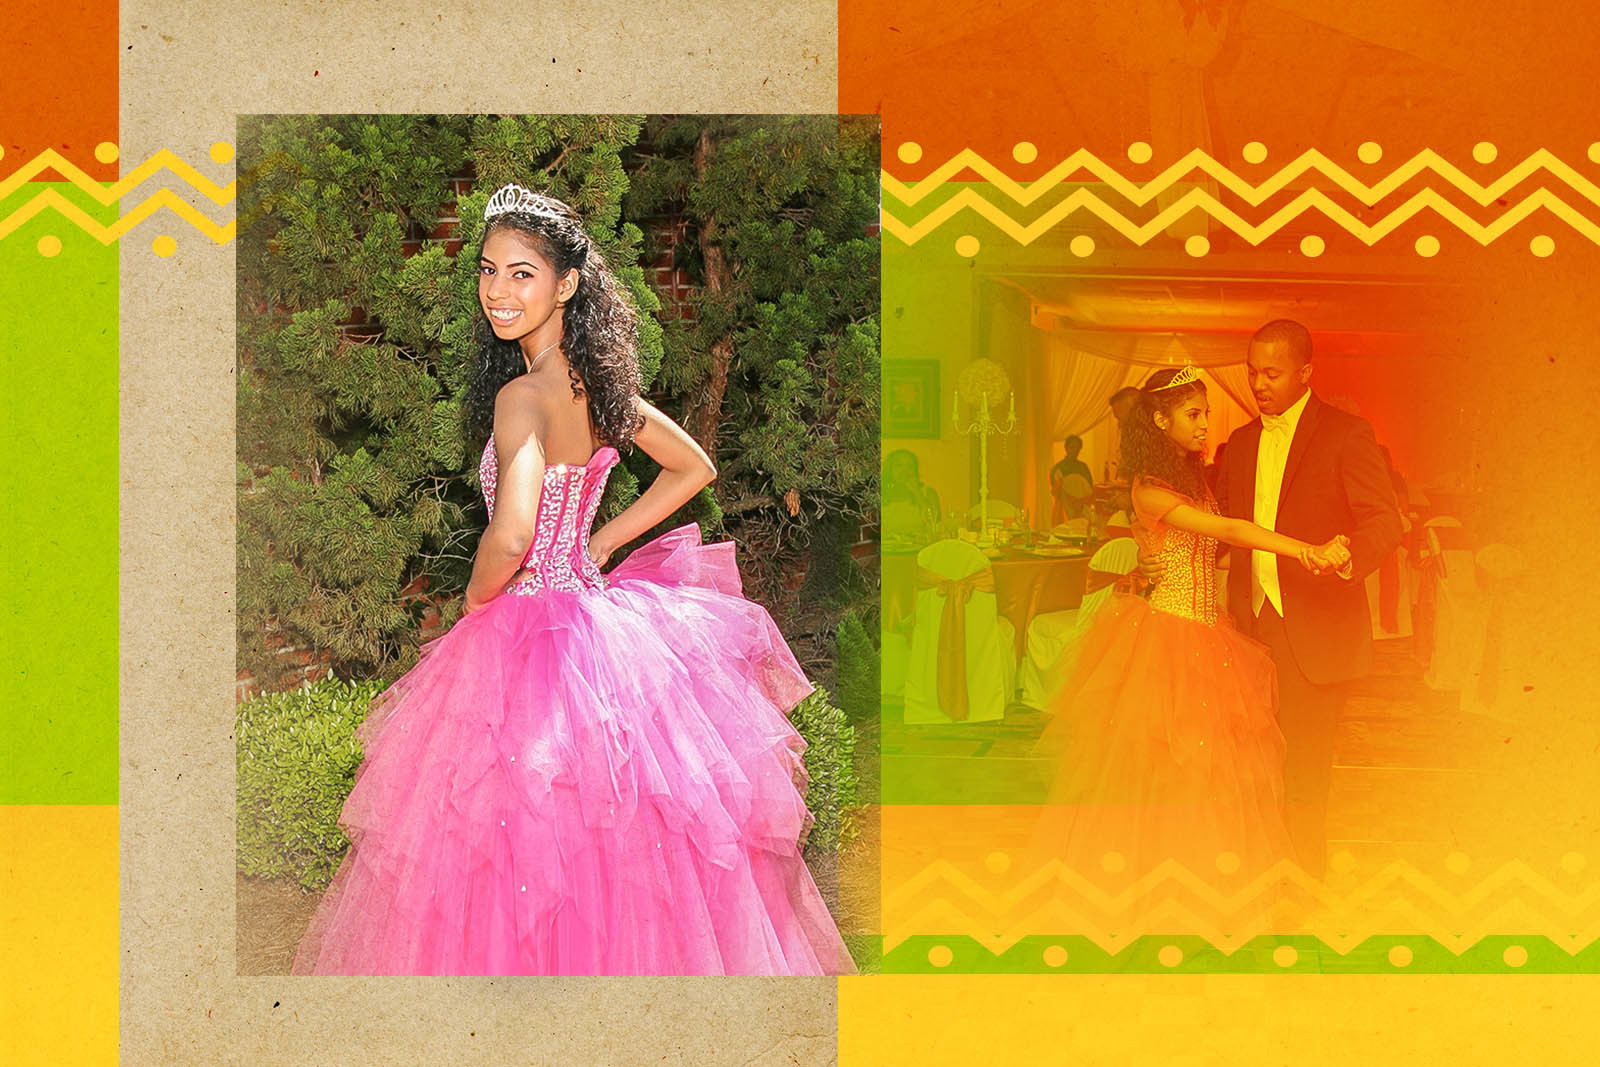 Daughter Kristianna's Quinceañera was a huge celebration filled with family and friends.